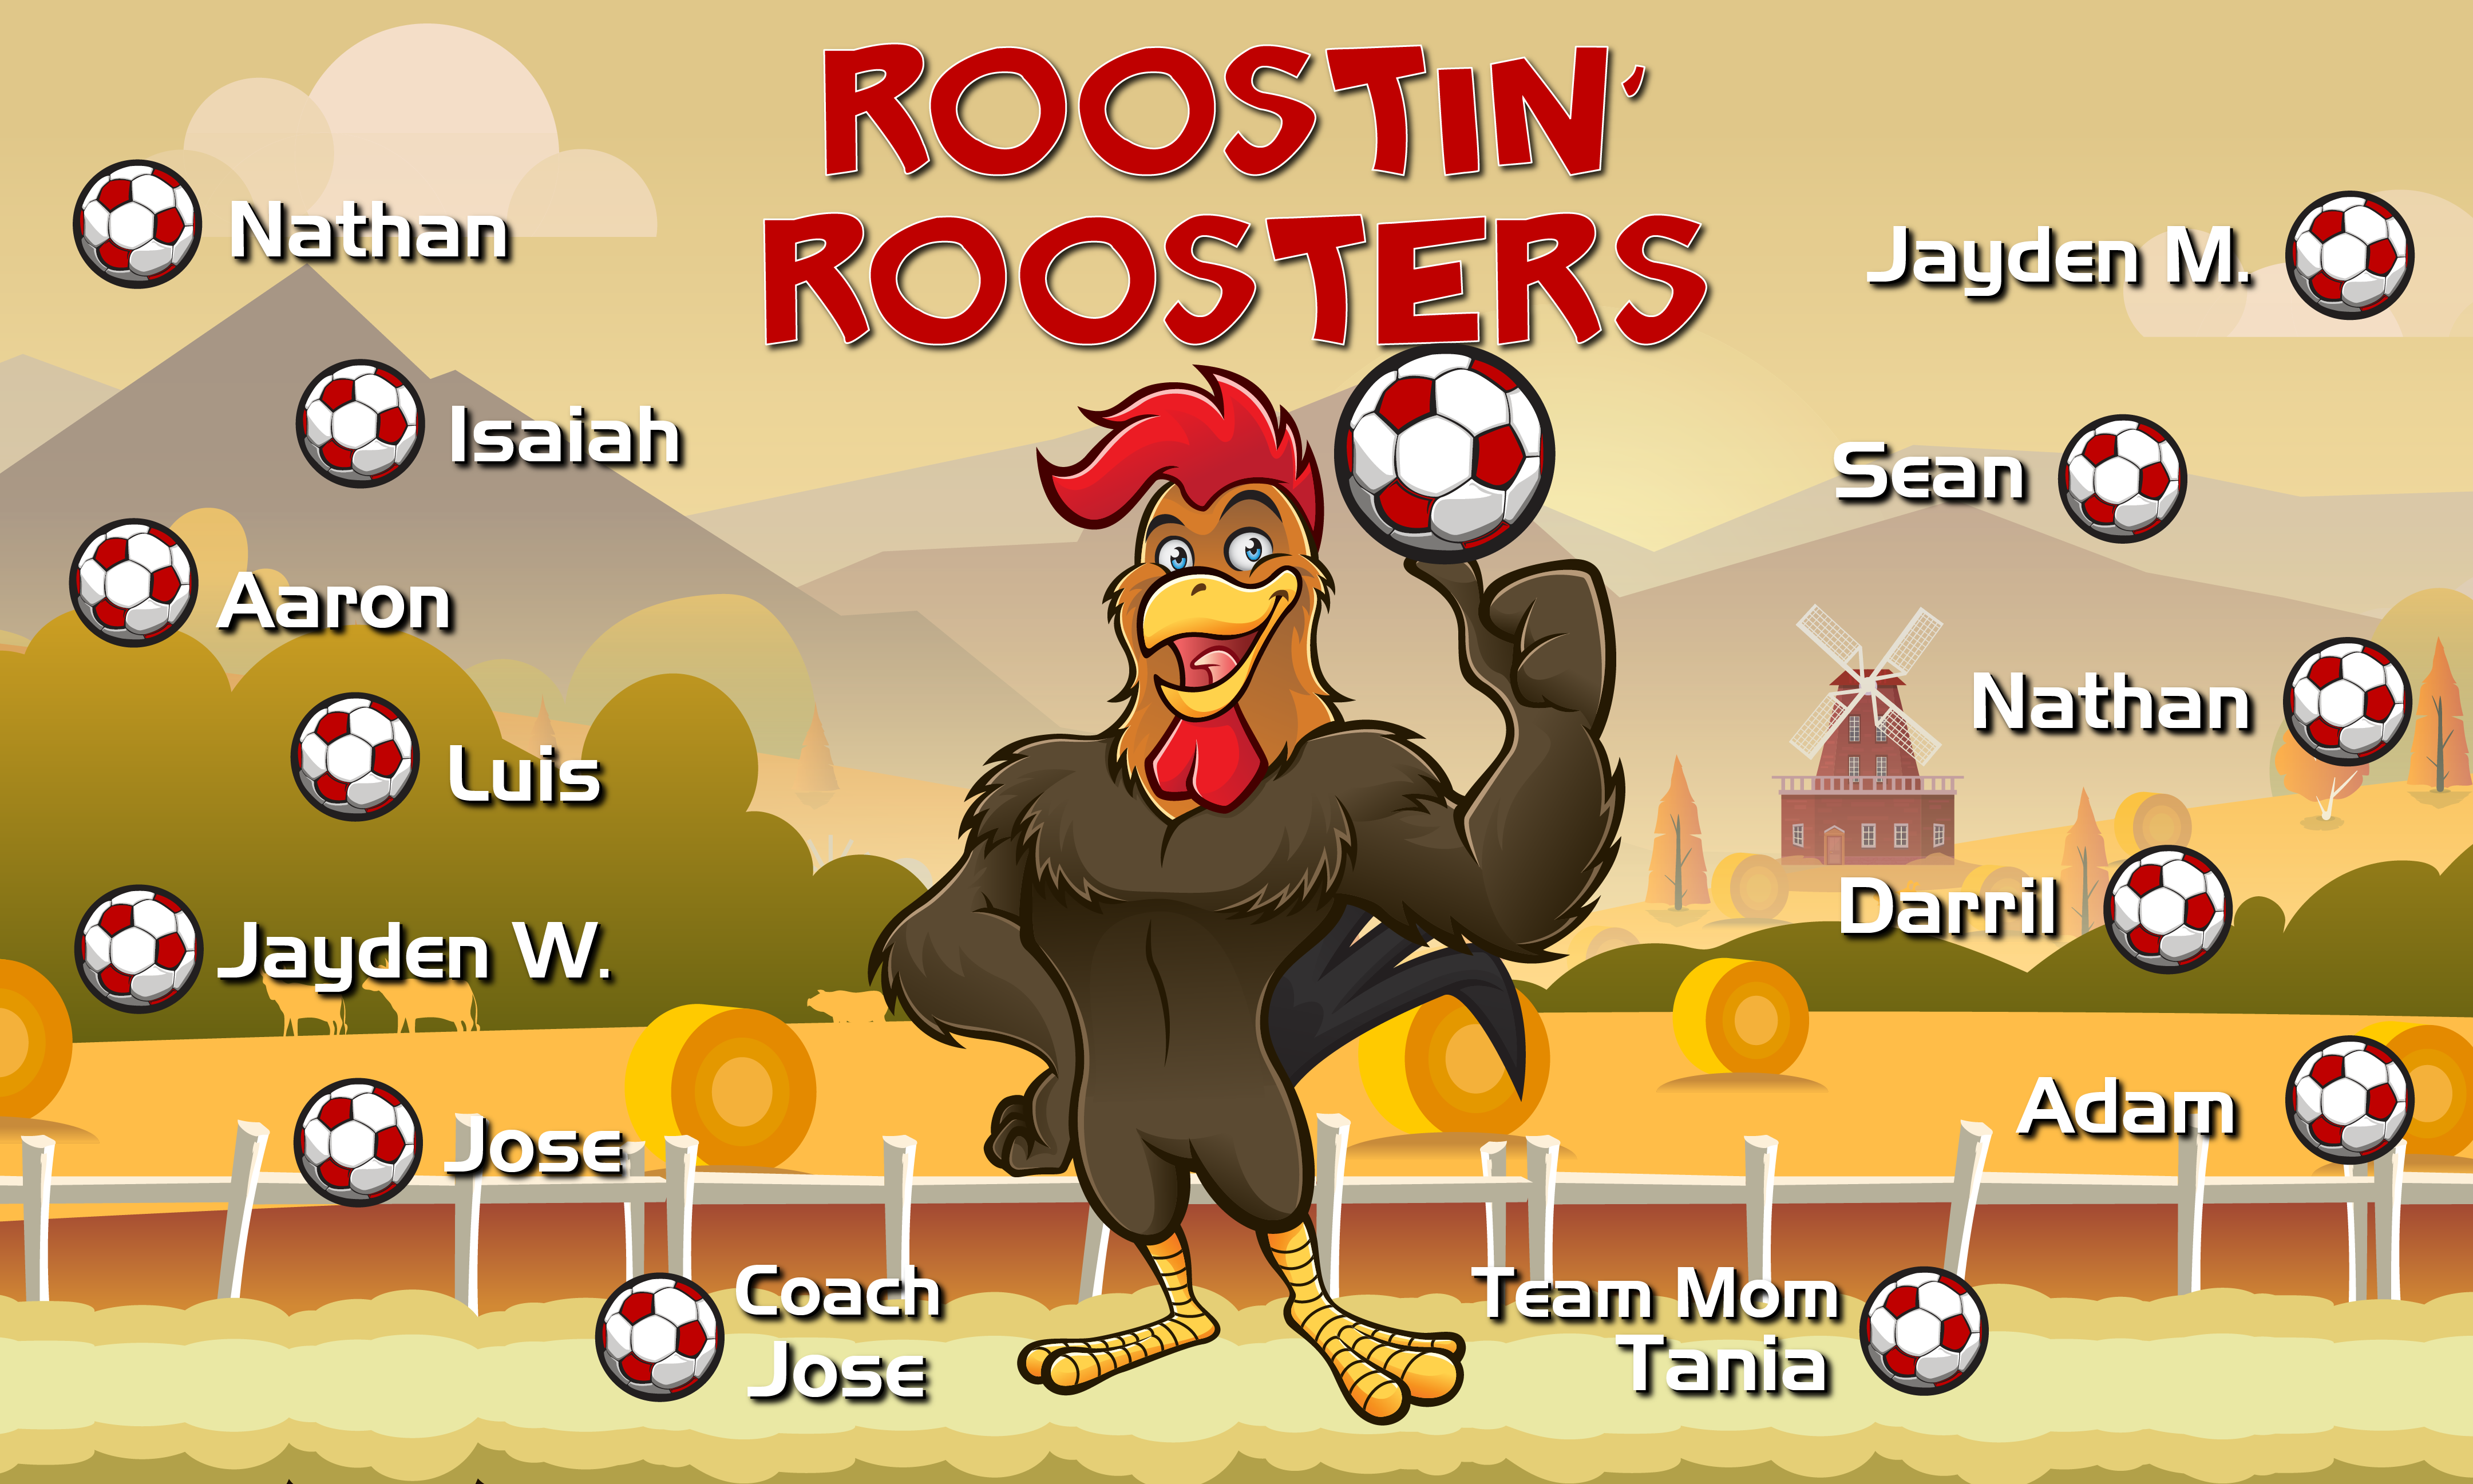 B2523 Roostin' Roosters 3x5 Banner